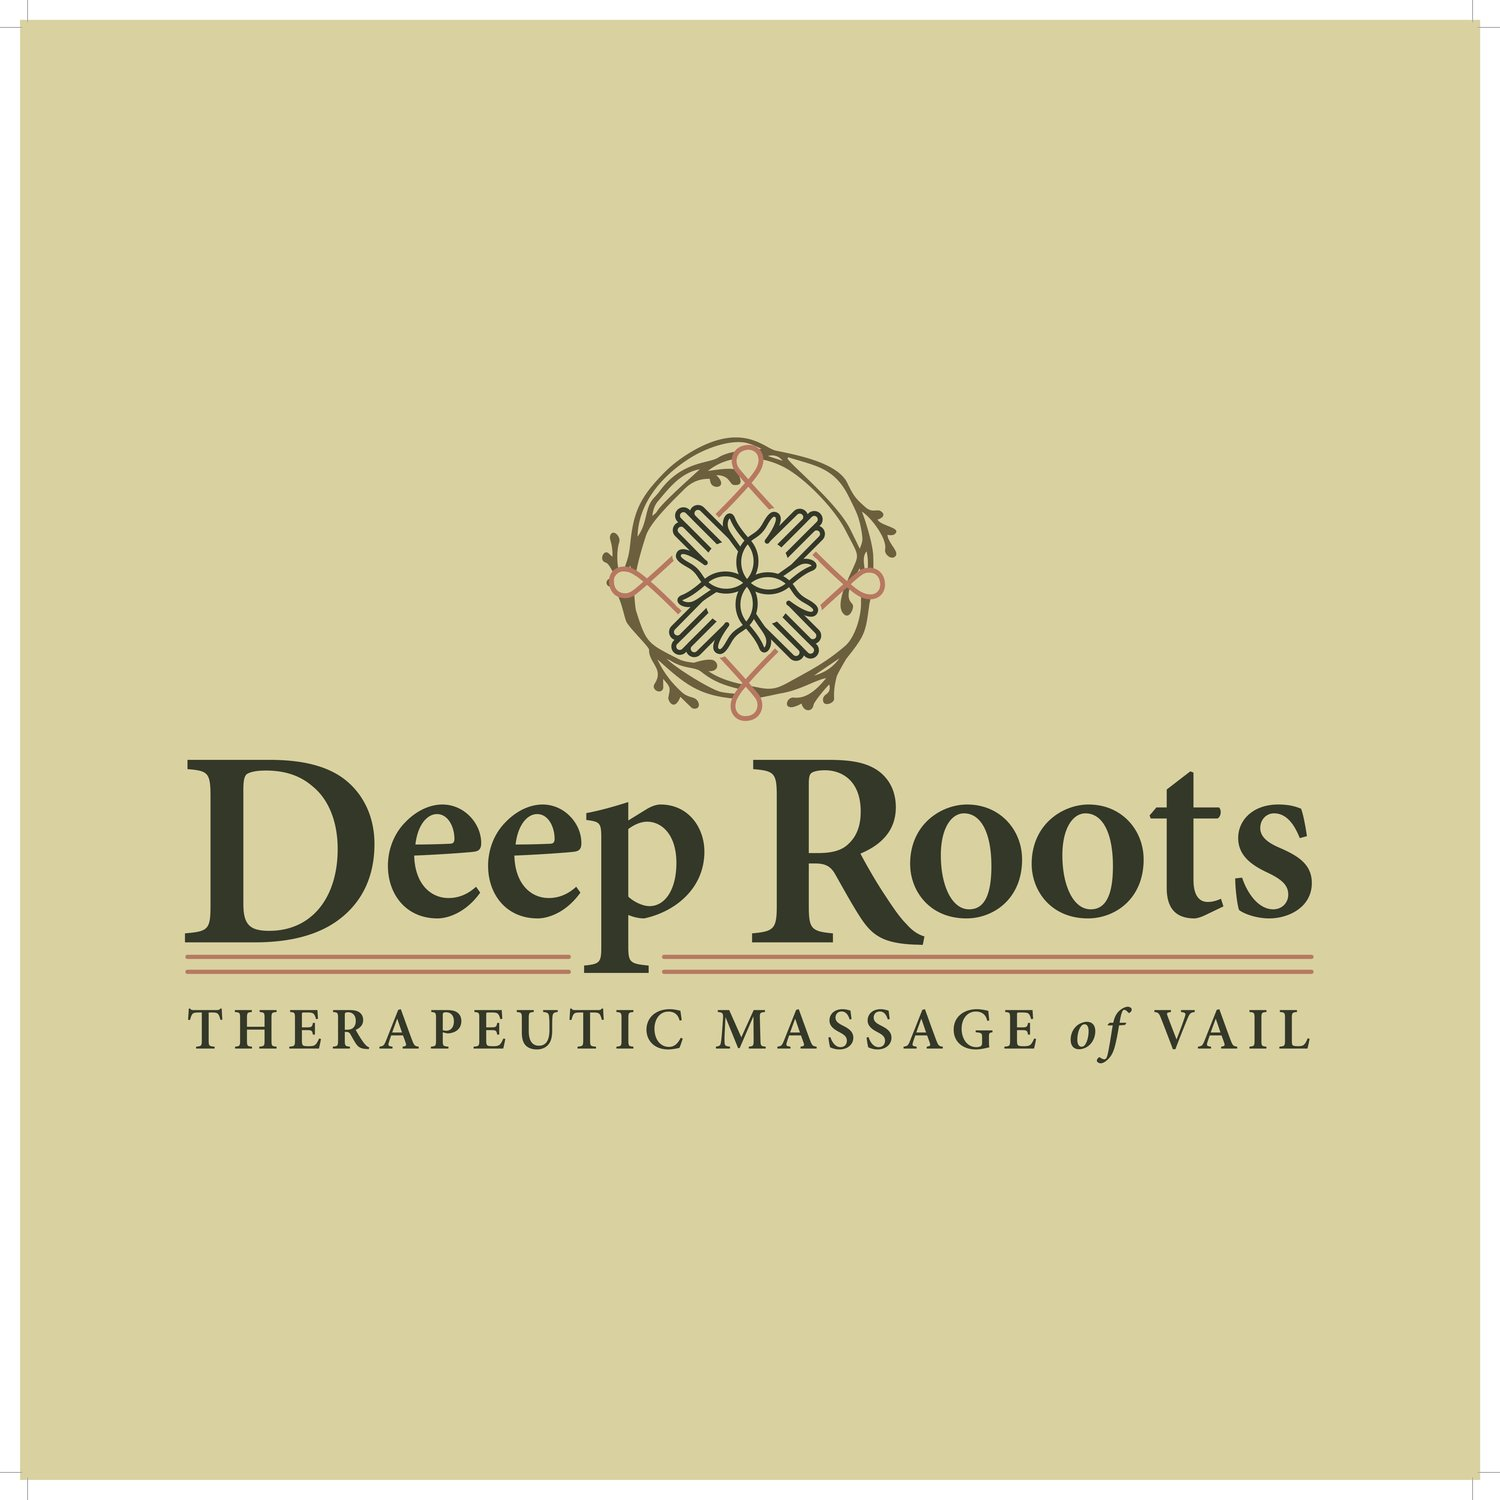 Deep Roots Therapeutic Massage of Vail